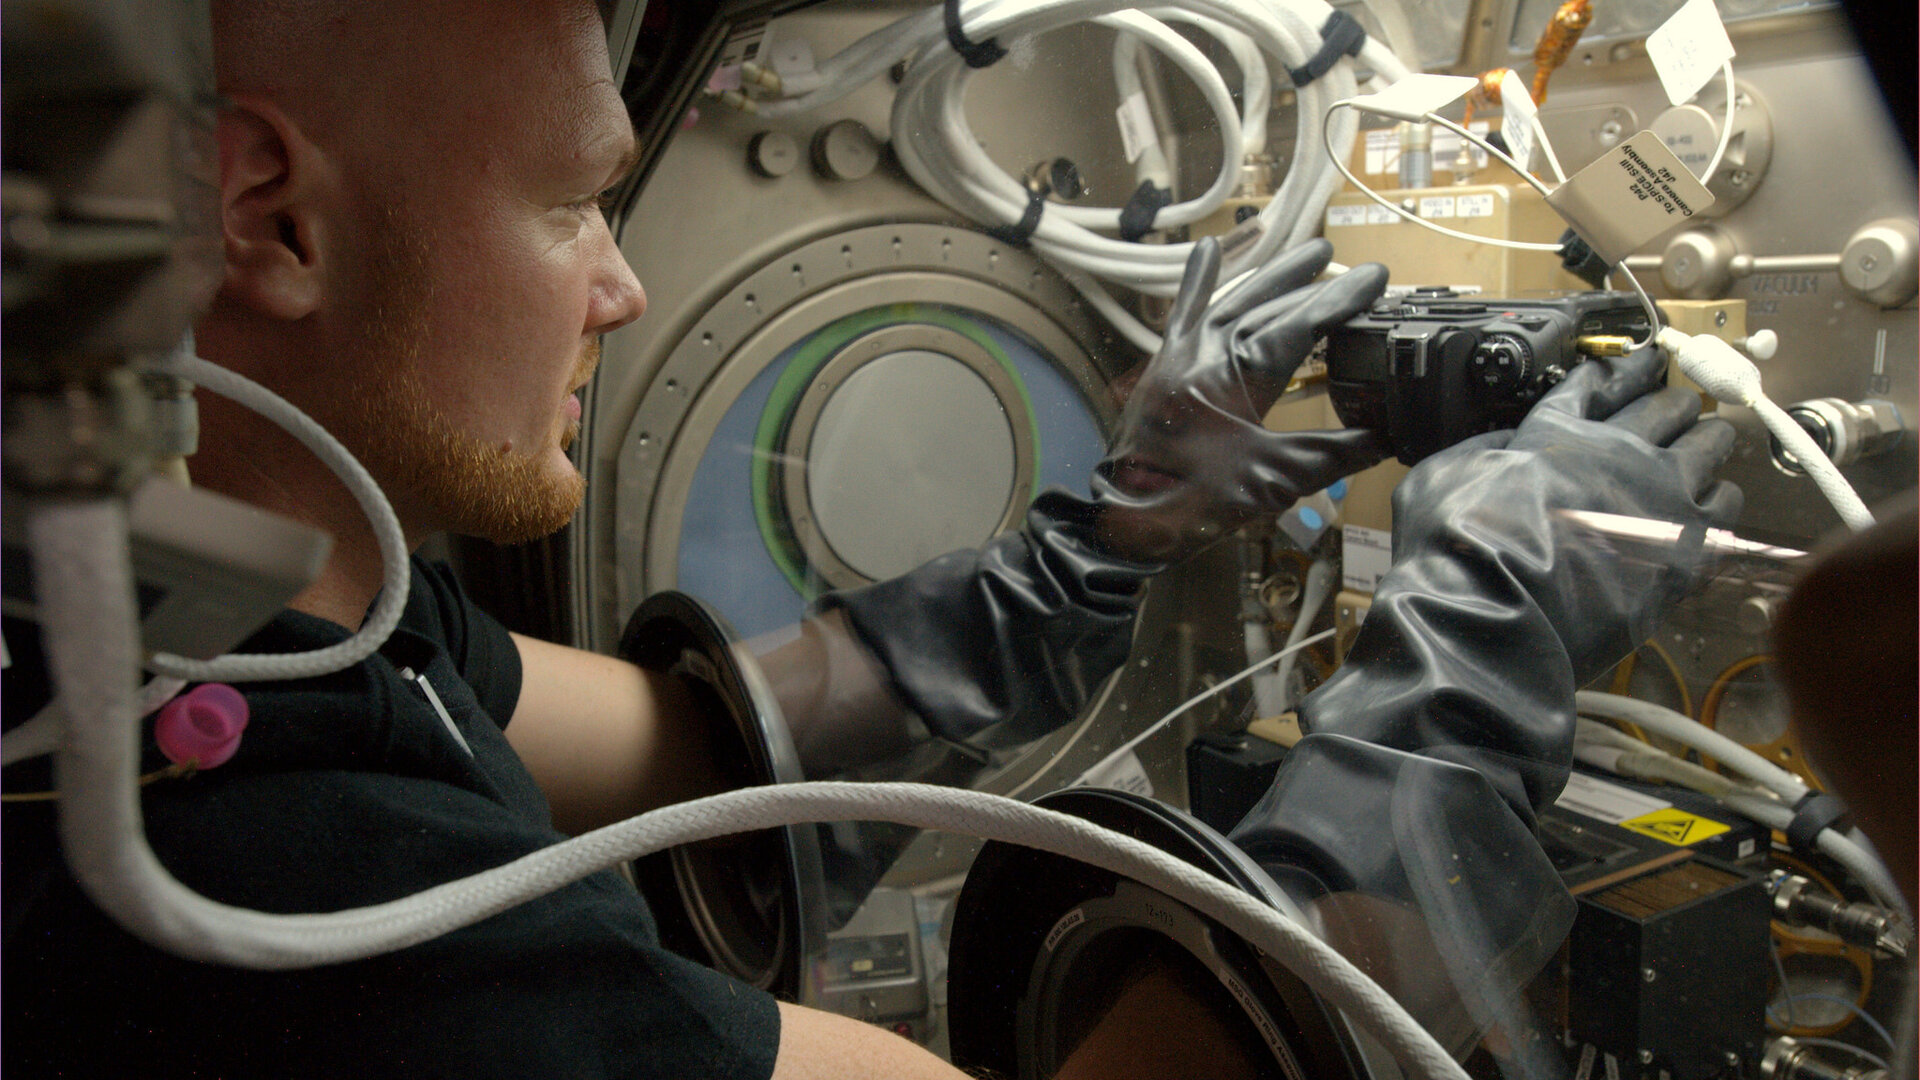 ESA astronaut Alexander Gerst working on fire experiment on Station